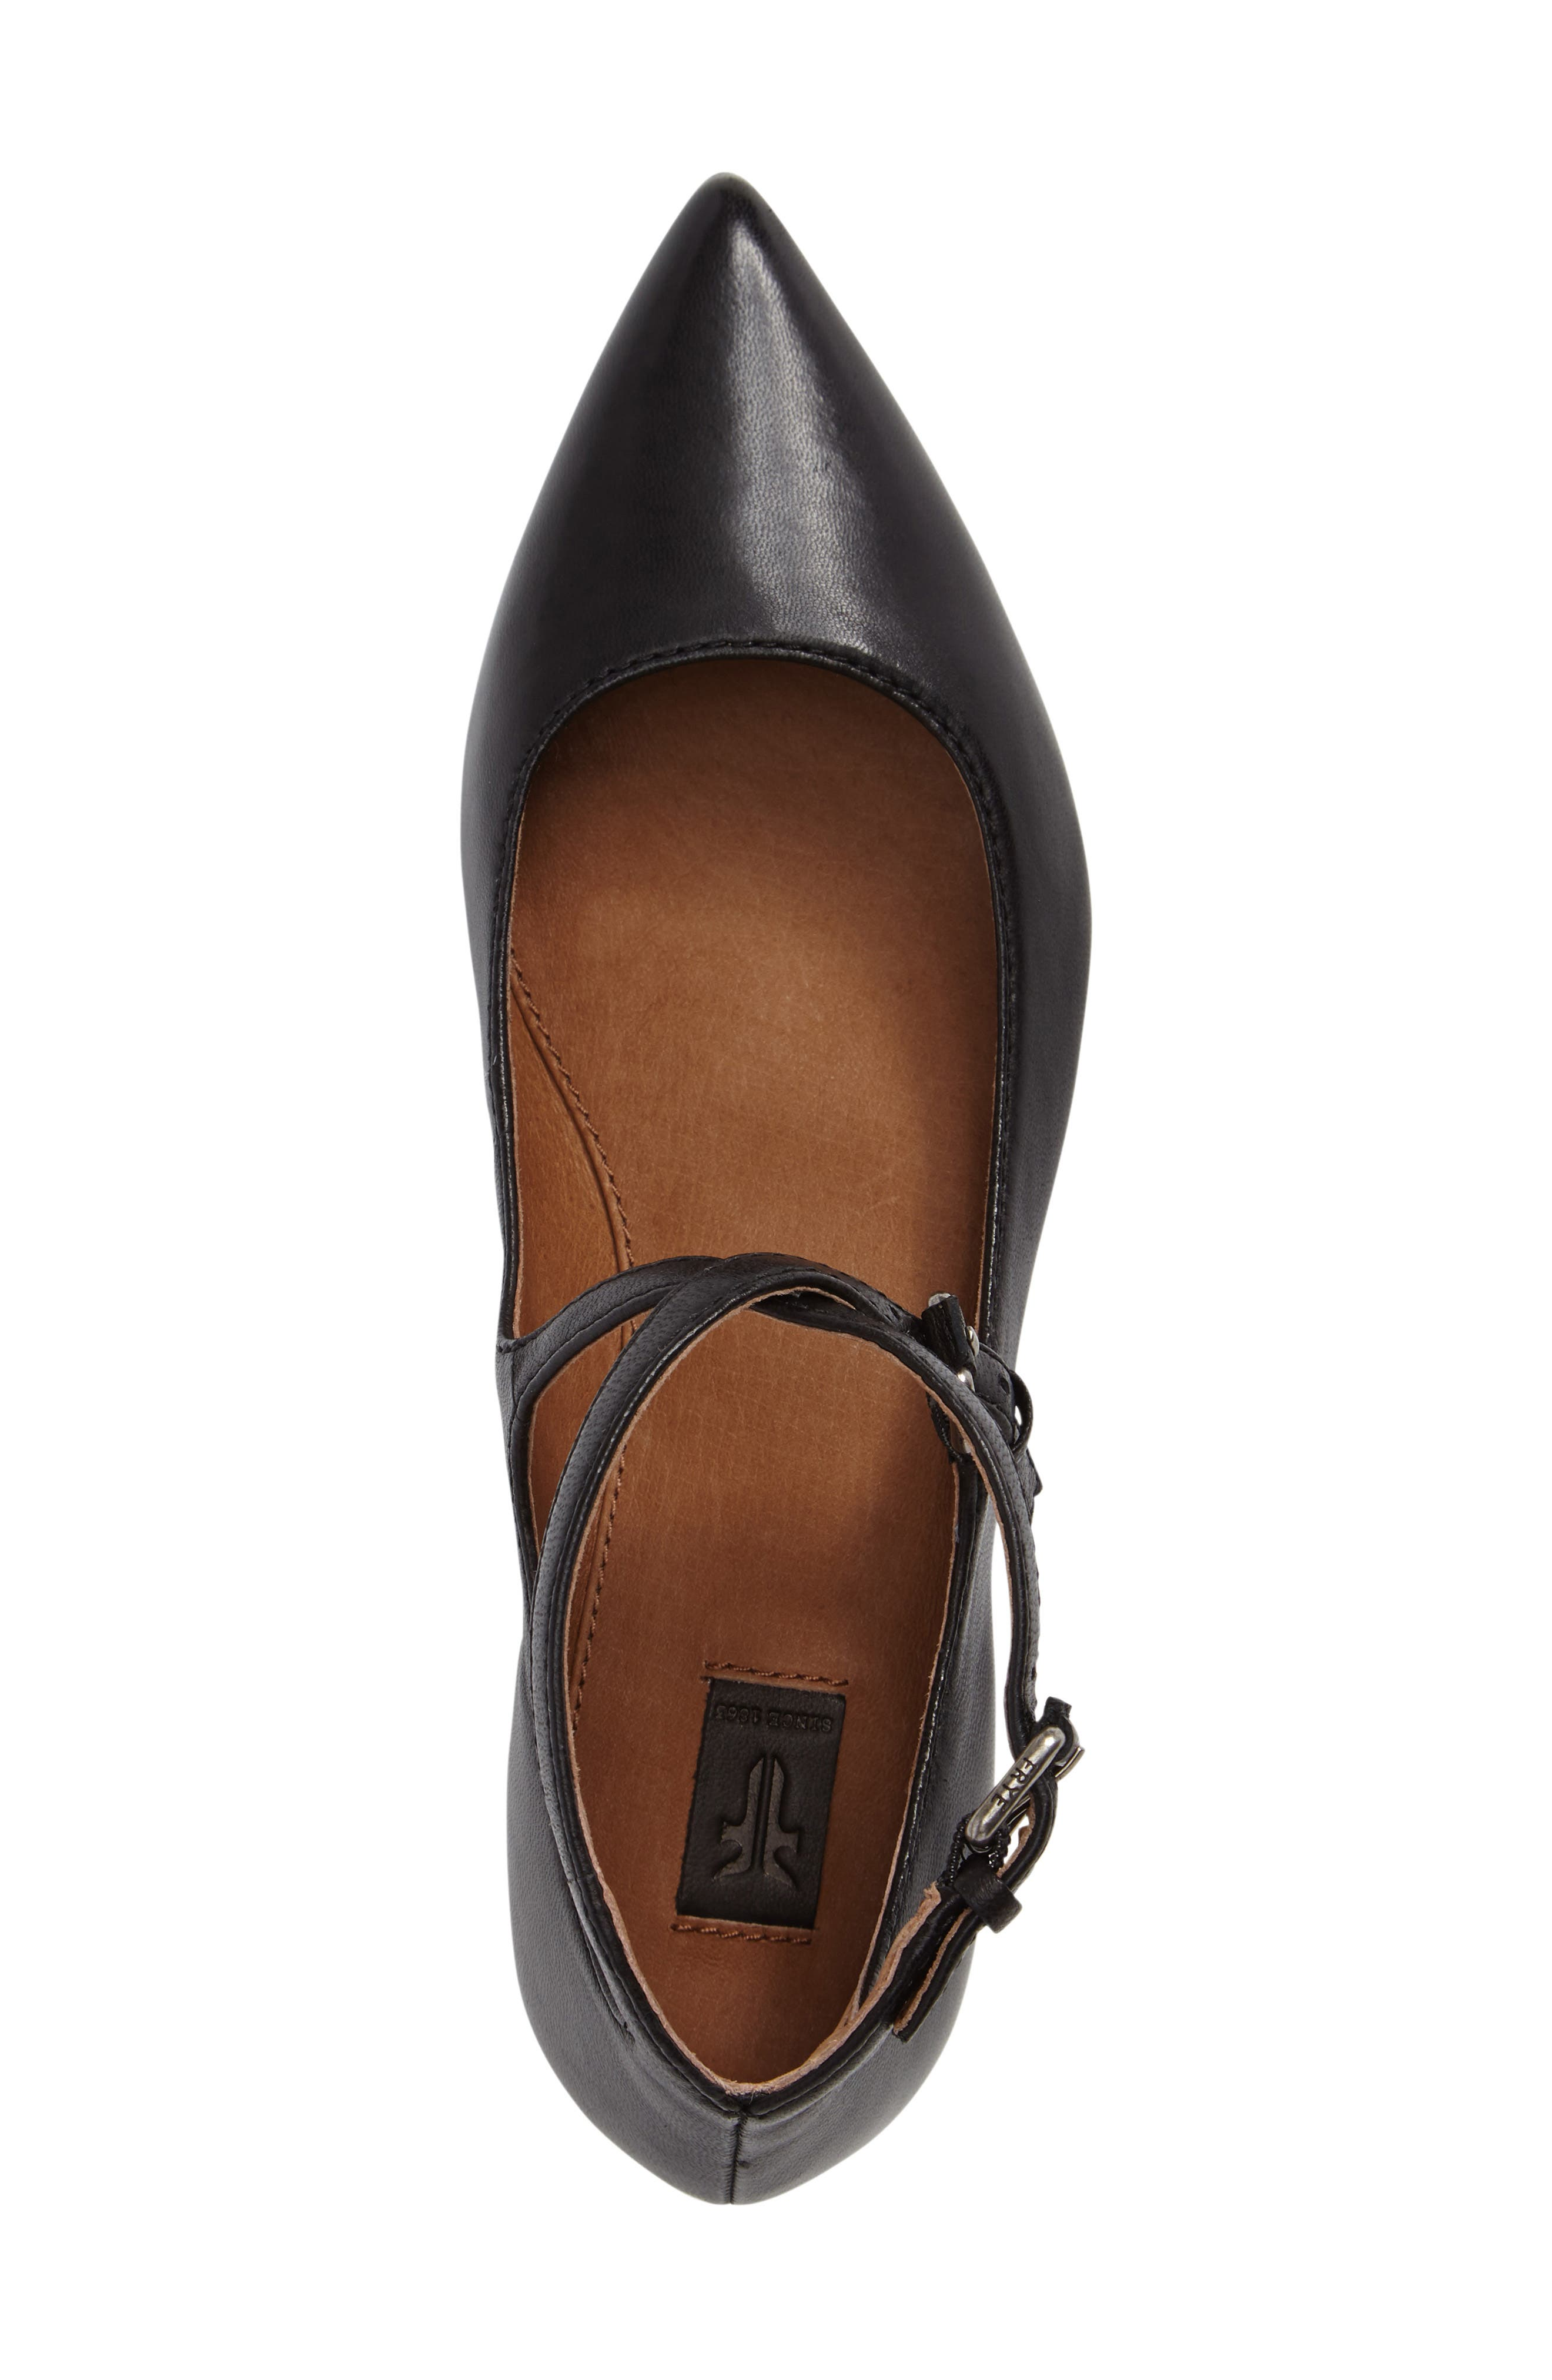 Sienna Cross Ballet Flat,                             Alternate thumbnail 3, color,                             Black